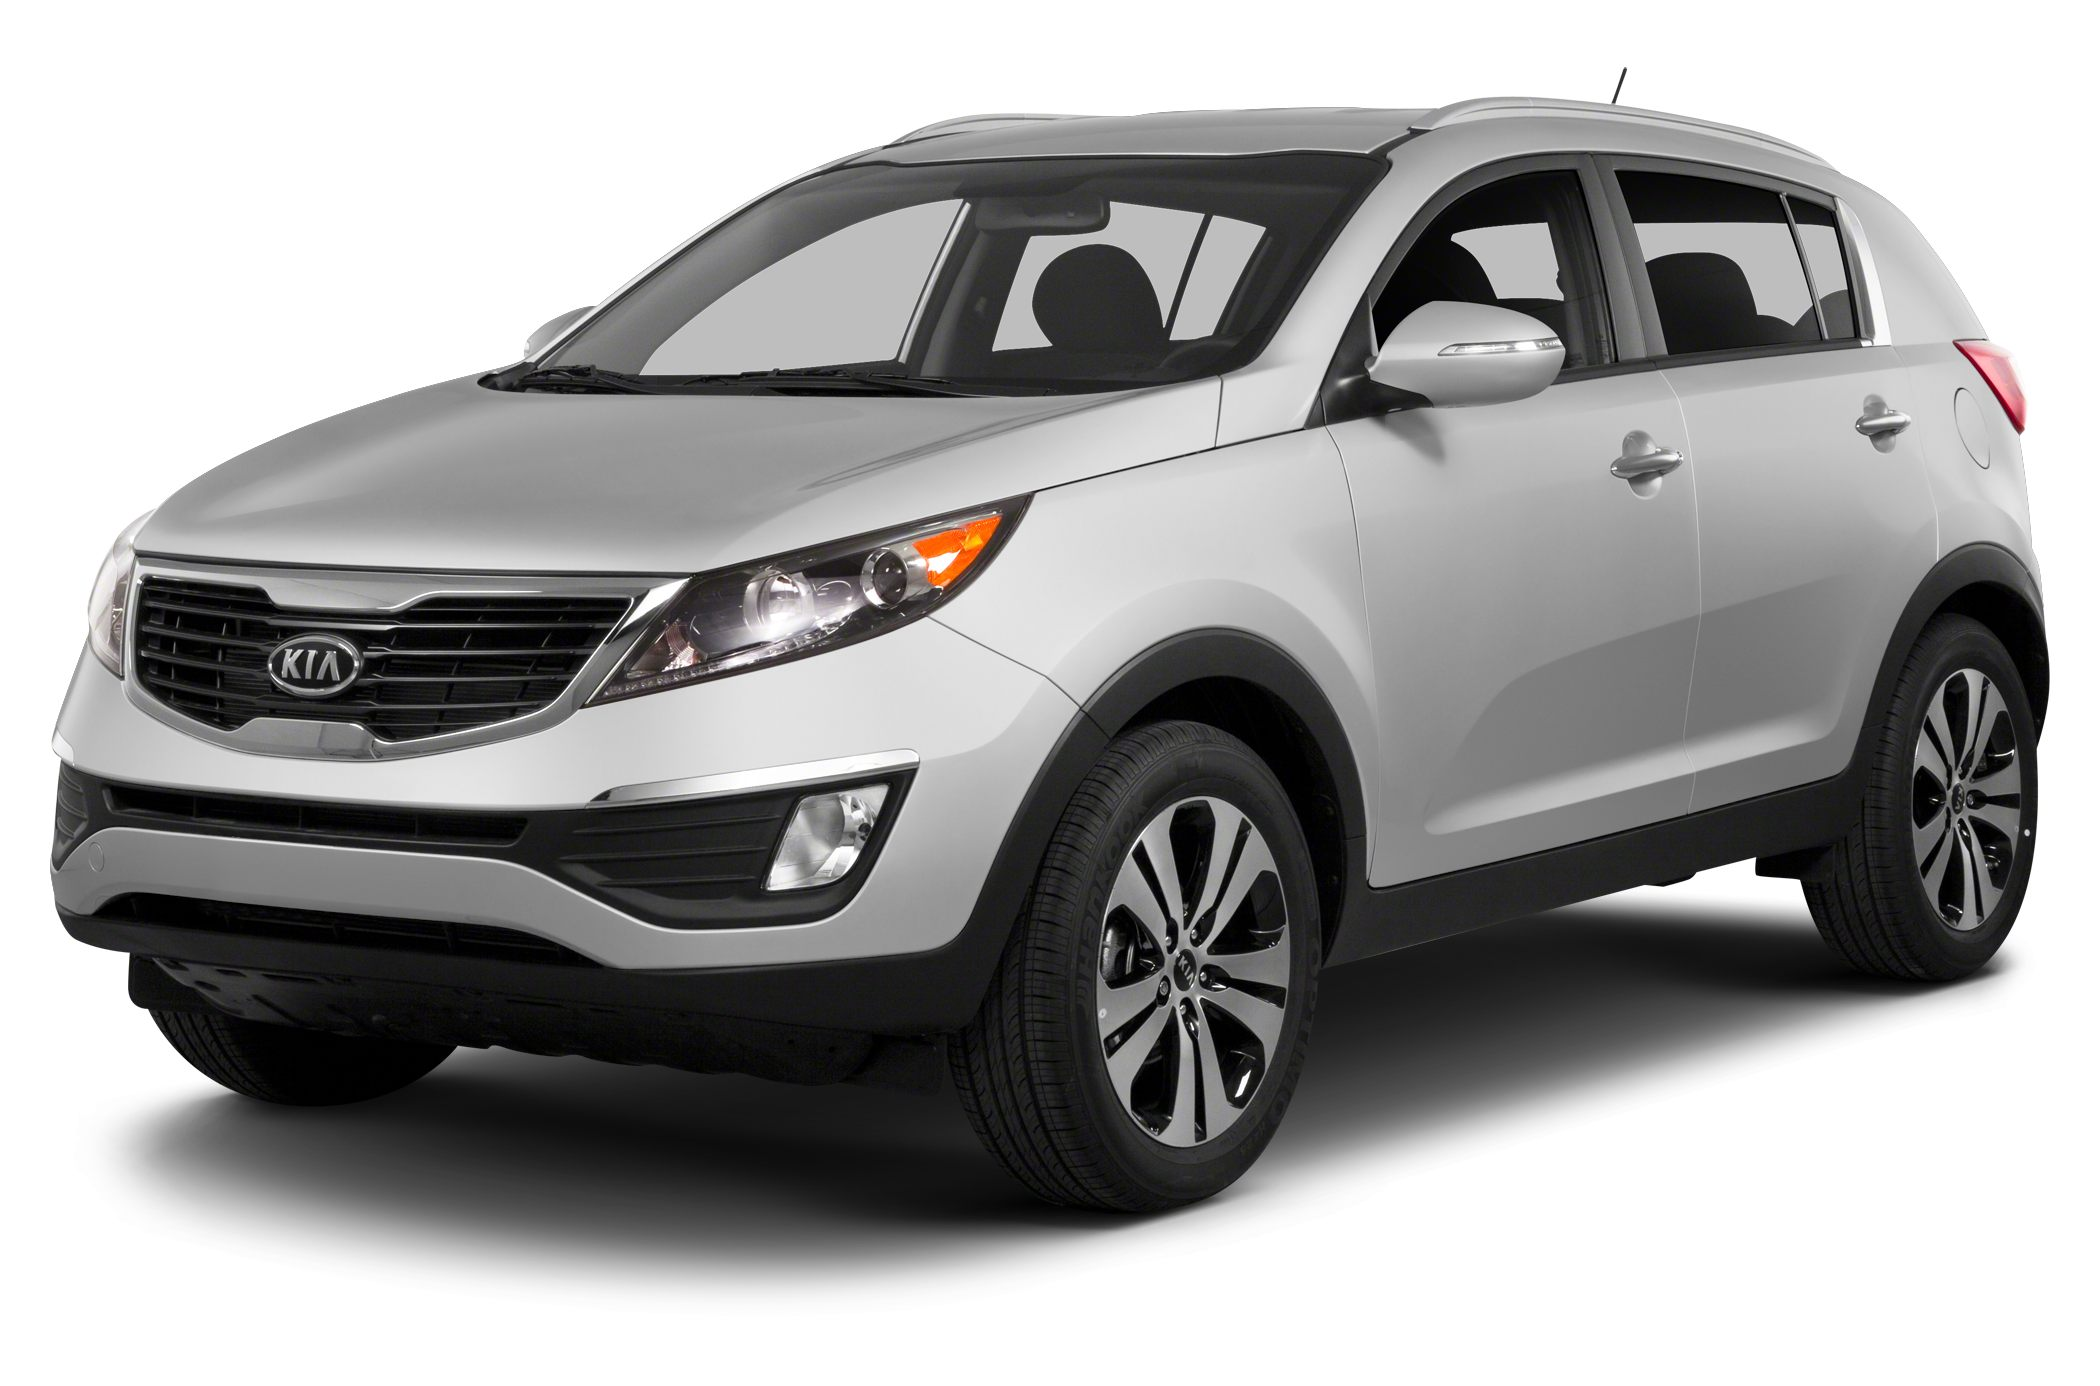 best ex sportage share gallery kia download image and